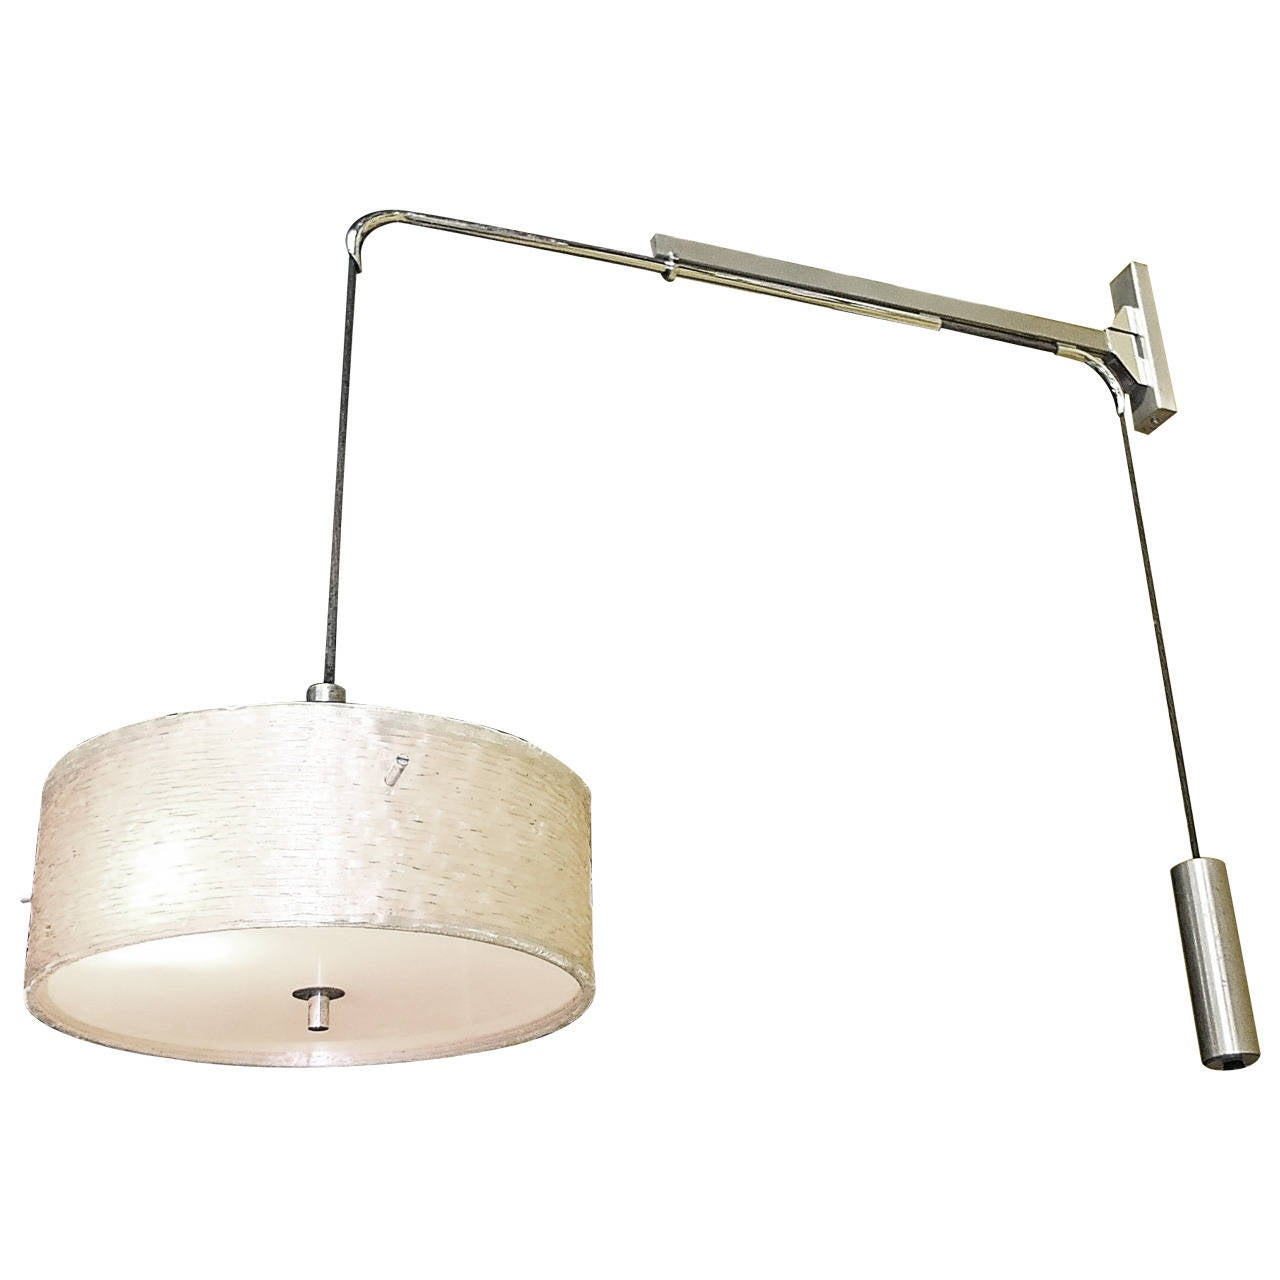 French 1950s Counterbalance Swing Arm Wall Lamp By Lunel For Sale